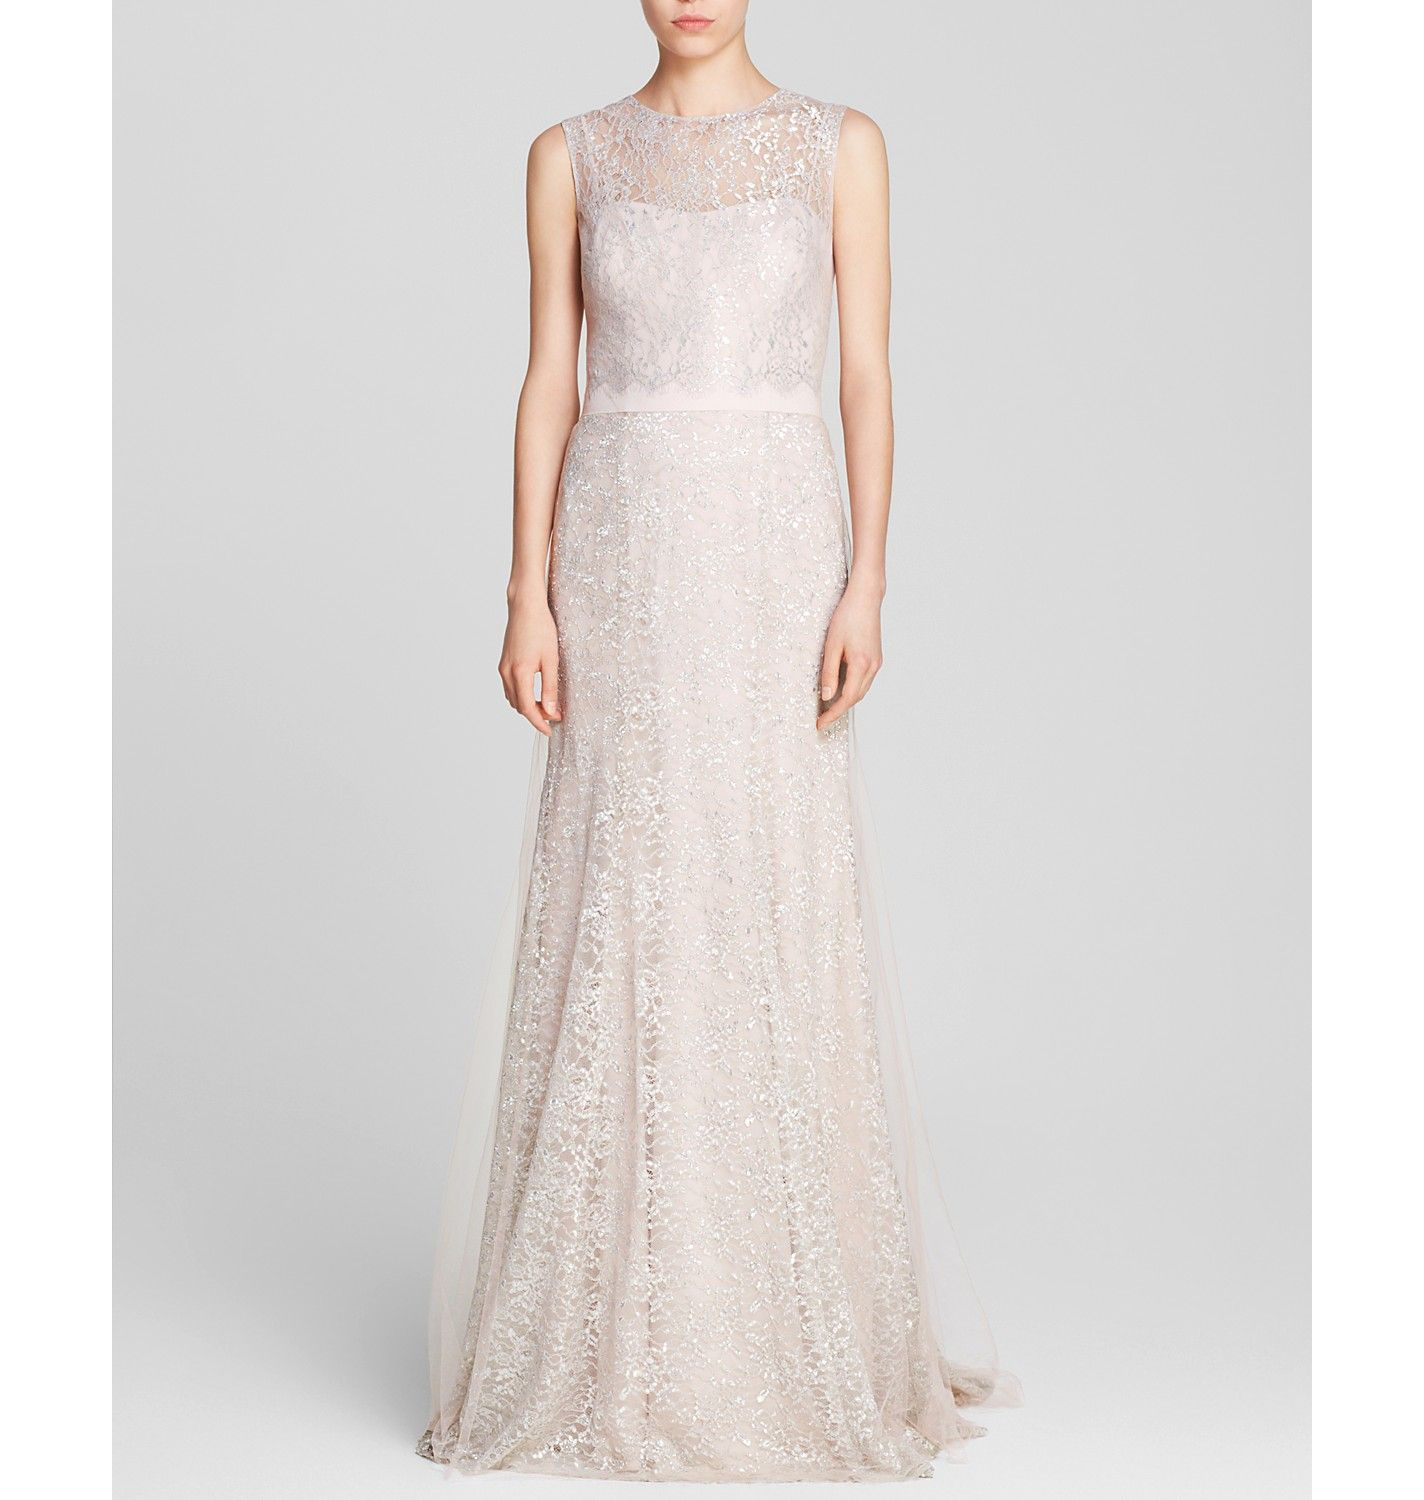 Vera Wang Gown - Sleeveless Lace Metallic | Bloomingdale's